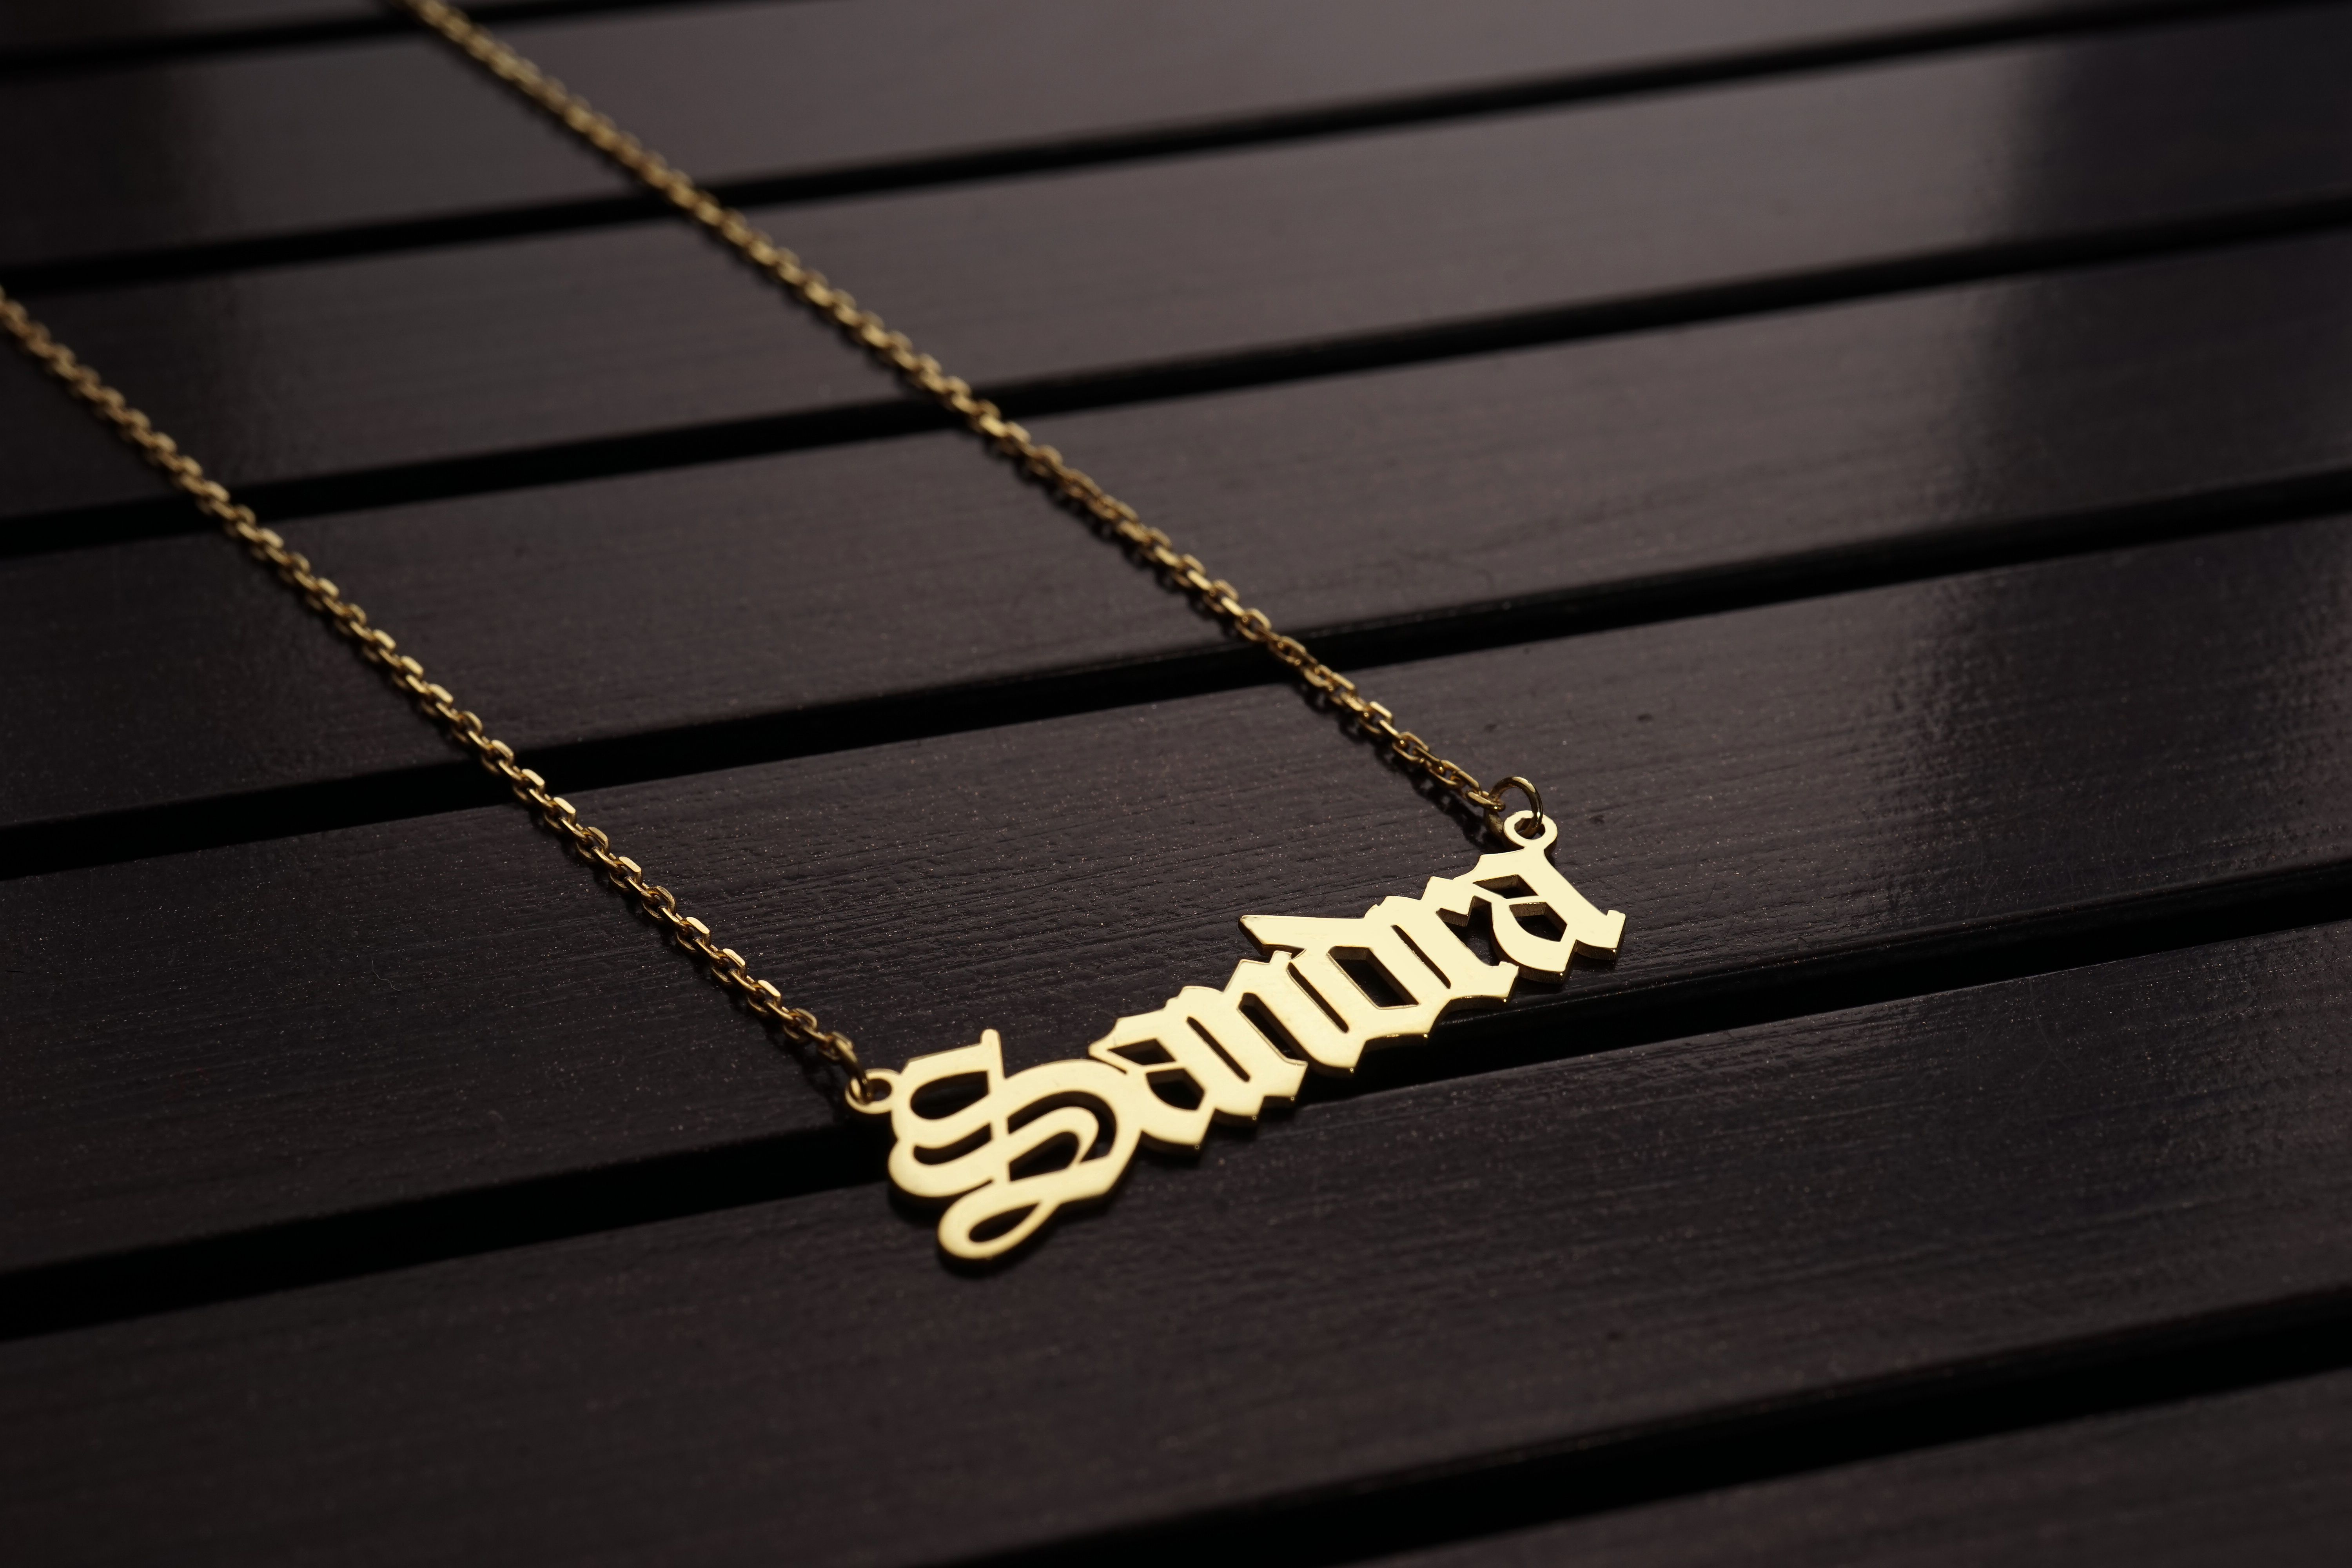 925 Sterling Silver Handmade Name Necklace Personalized Name